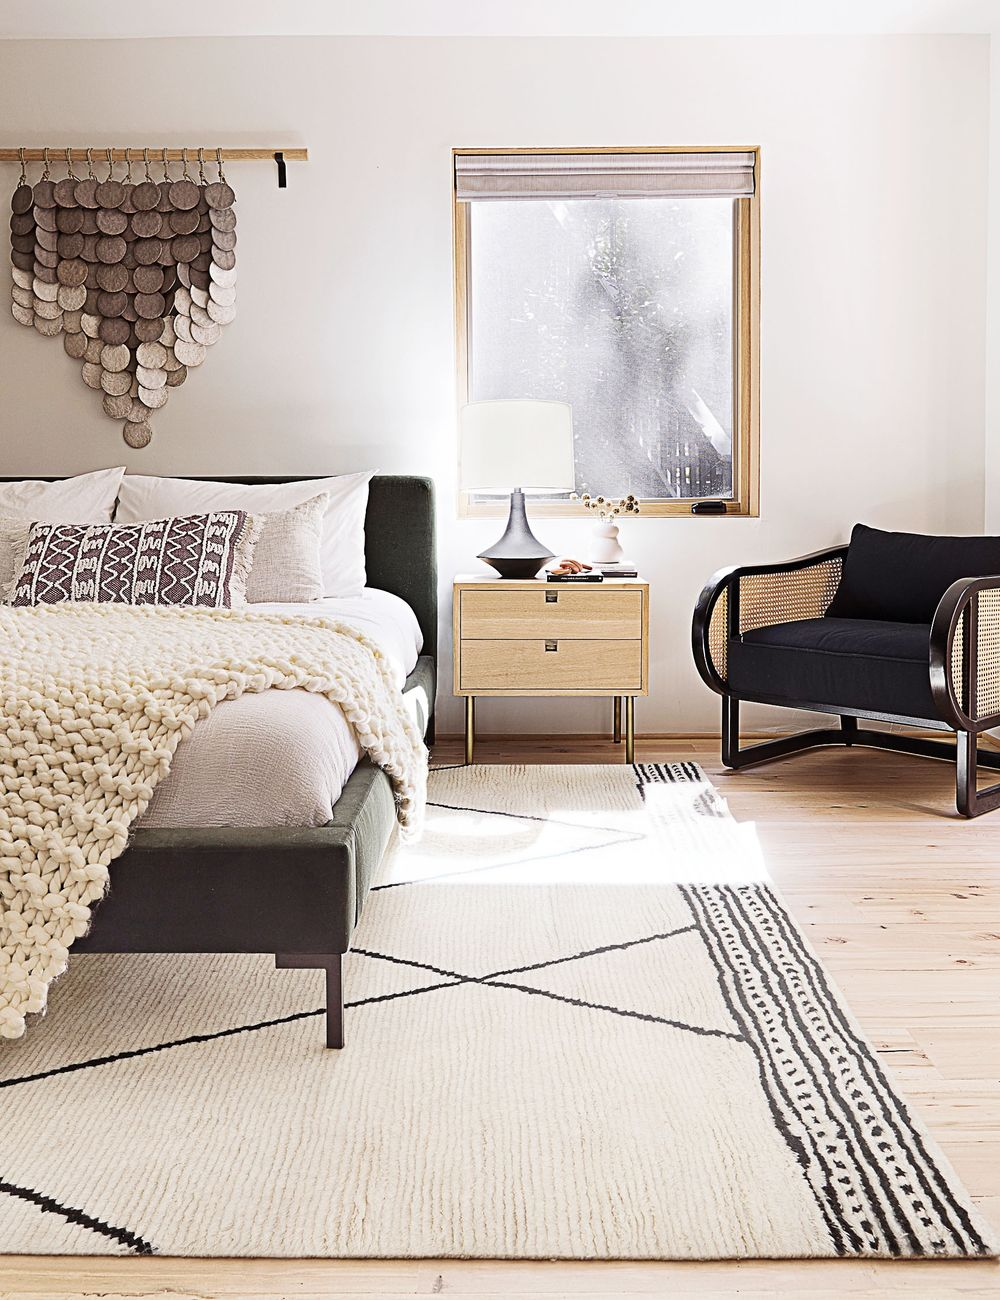 bedroom_2-2648-low_res